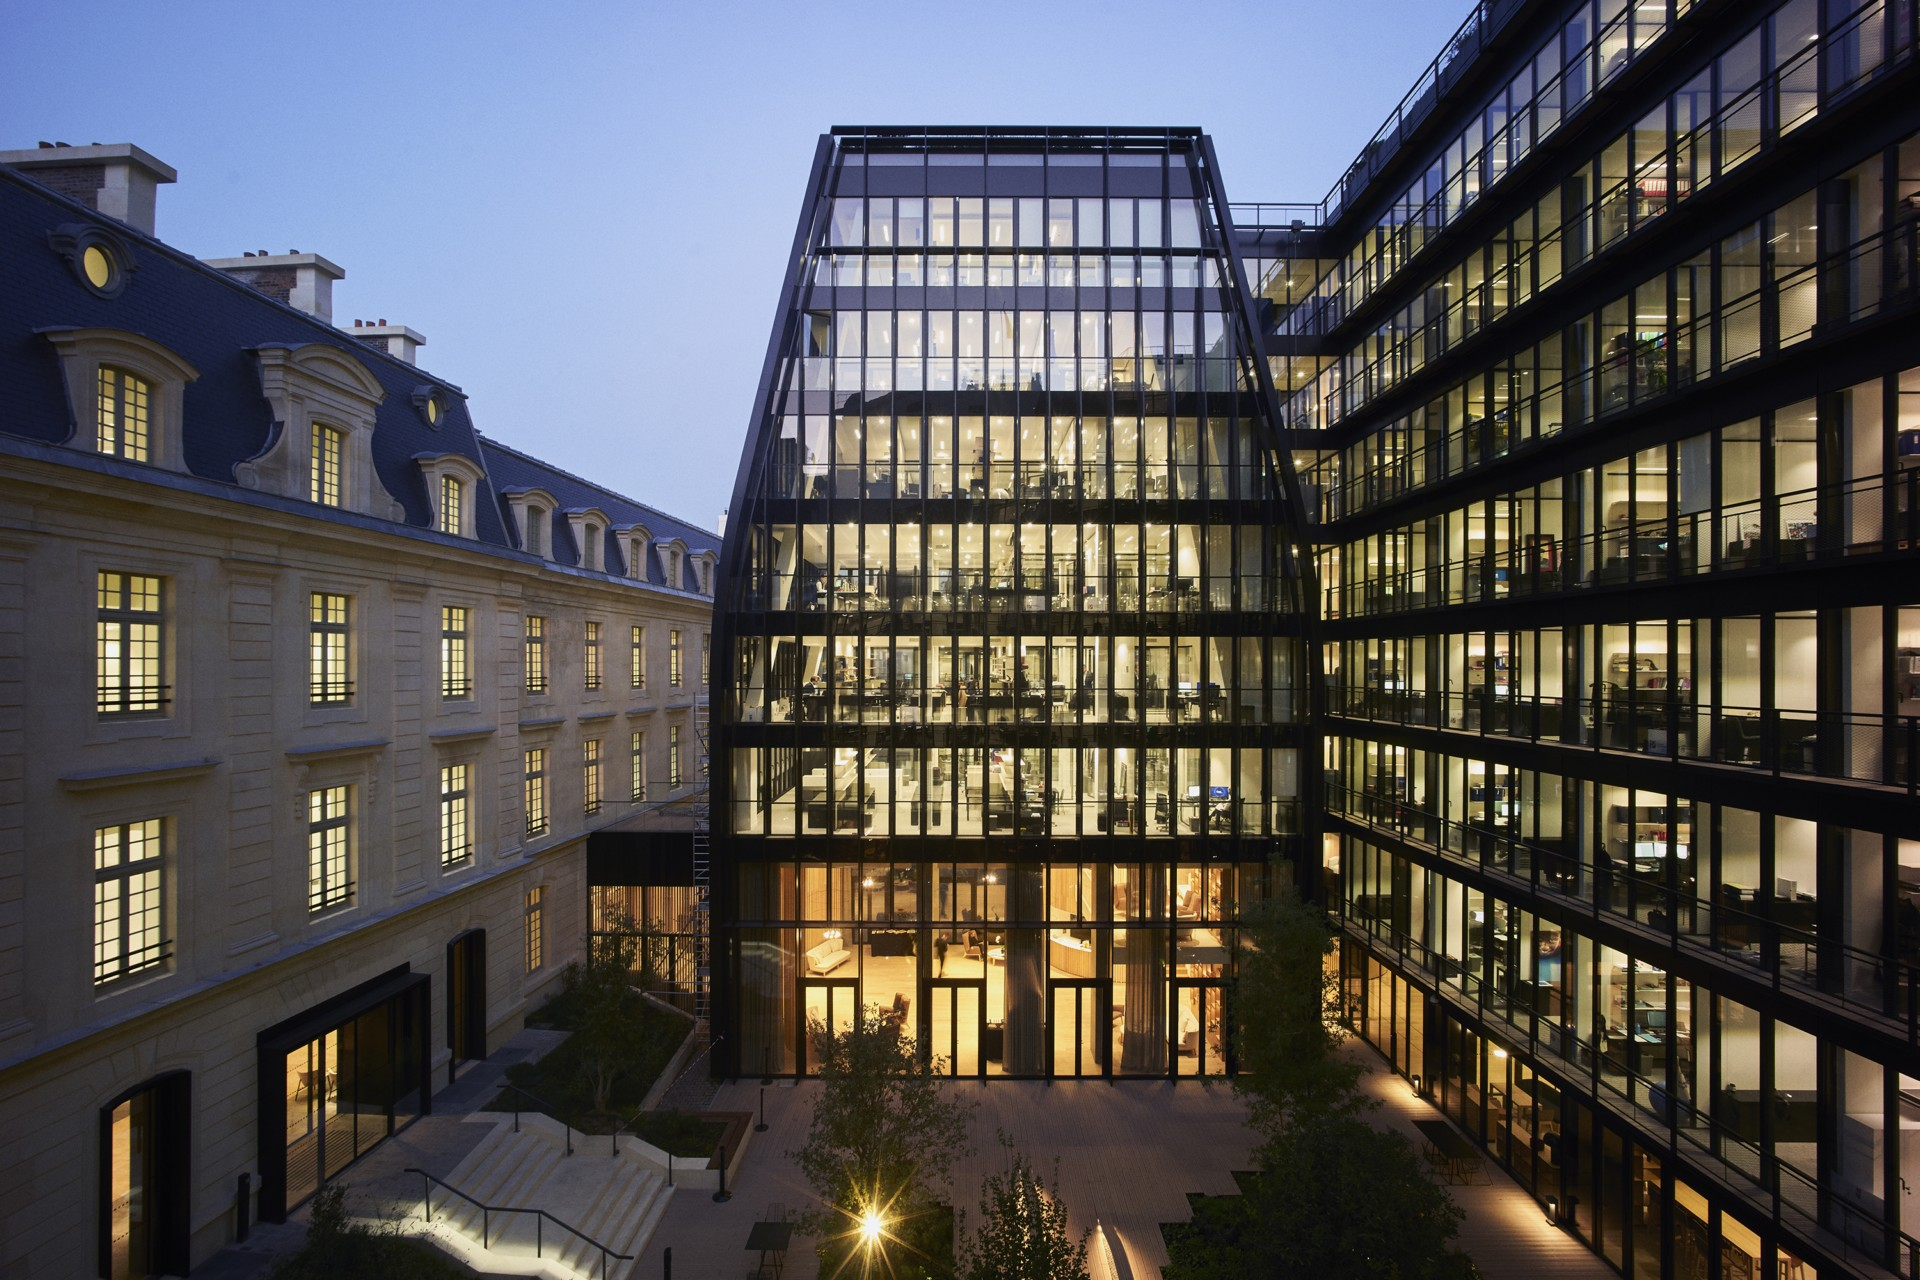 Pcastream Laborde Conversion Of The Barracks Of The Royal Guard In Paris Into Office Space Floornature